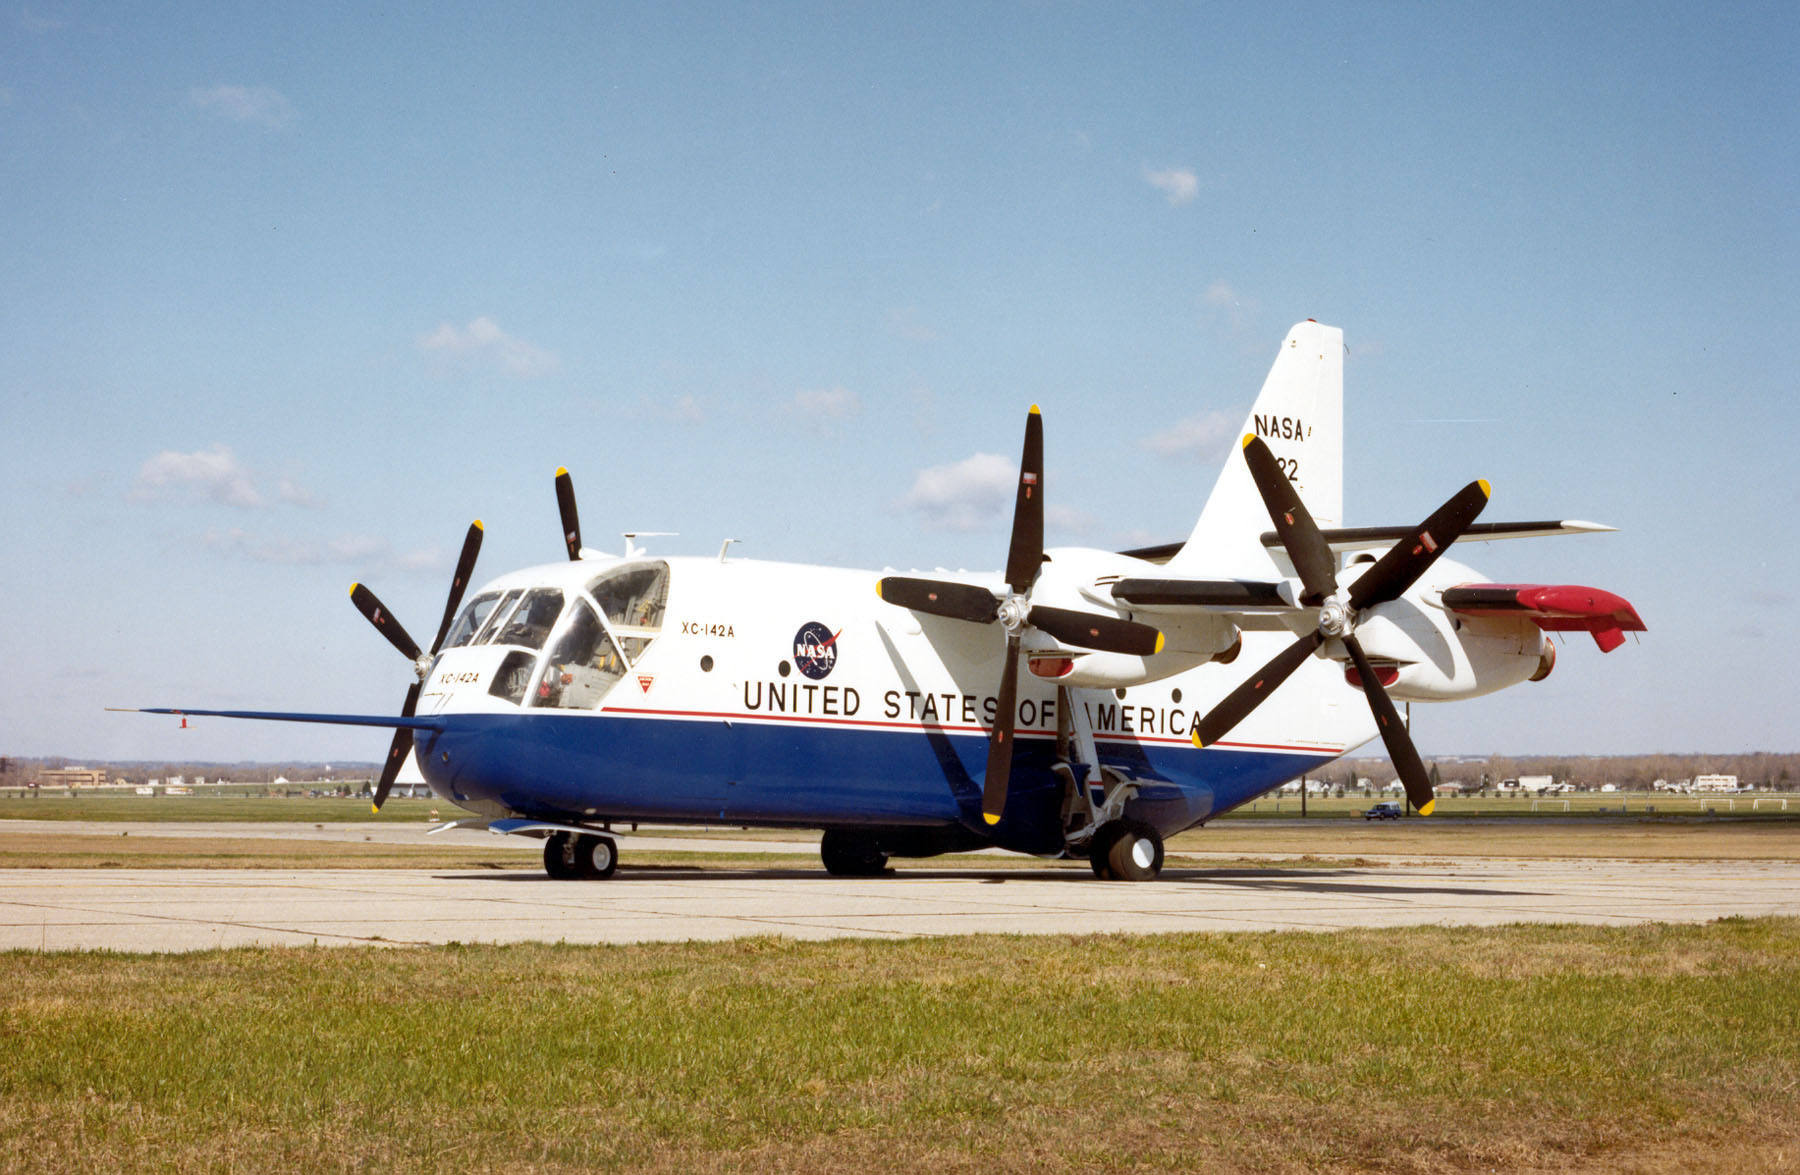 Chance-Vought/LTV XC-142A > National Museum of the US Air